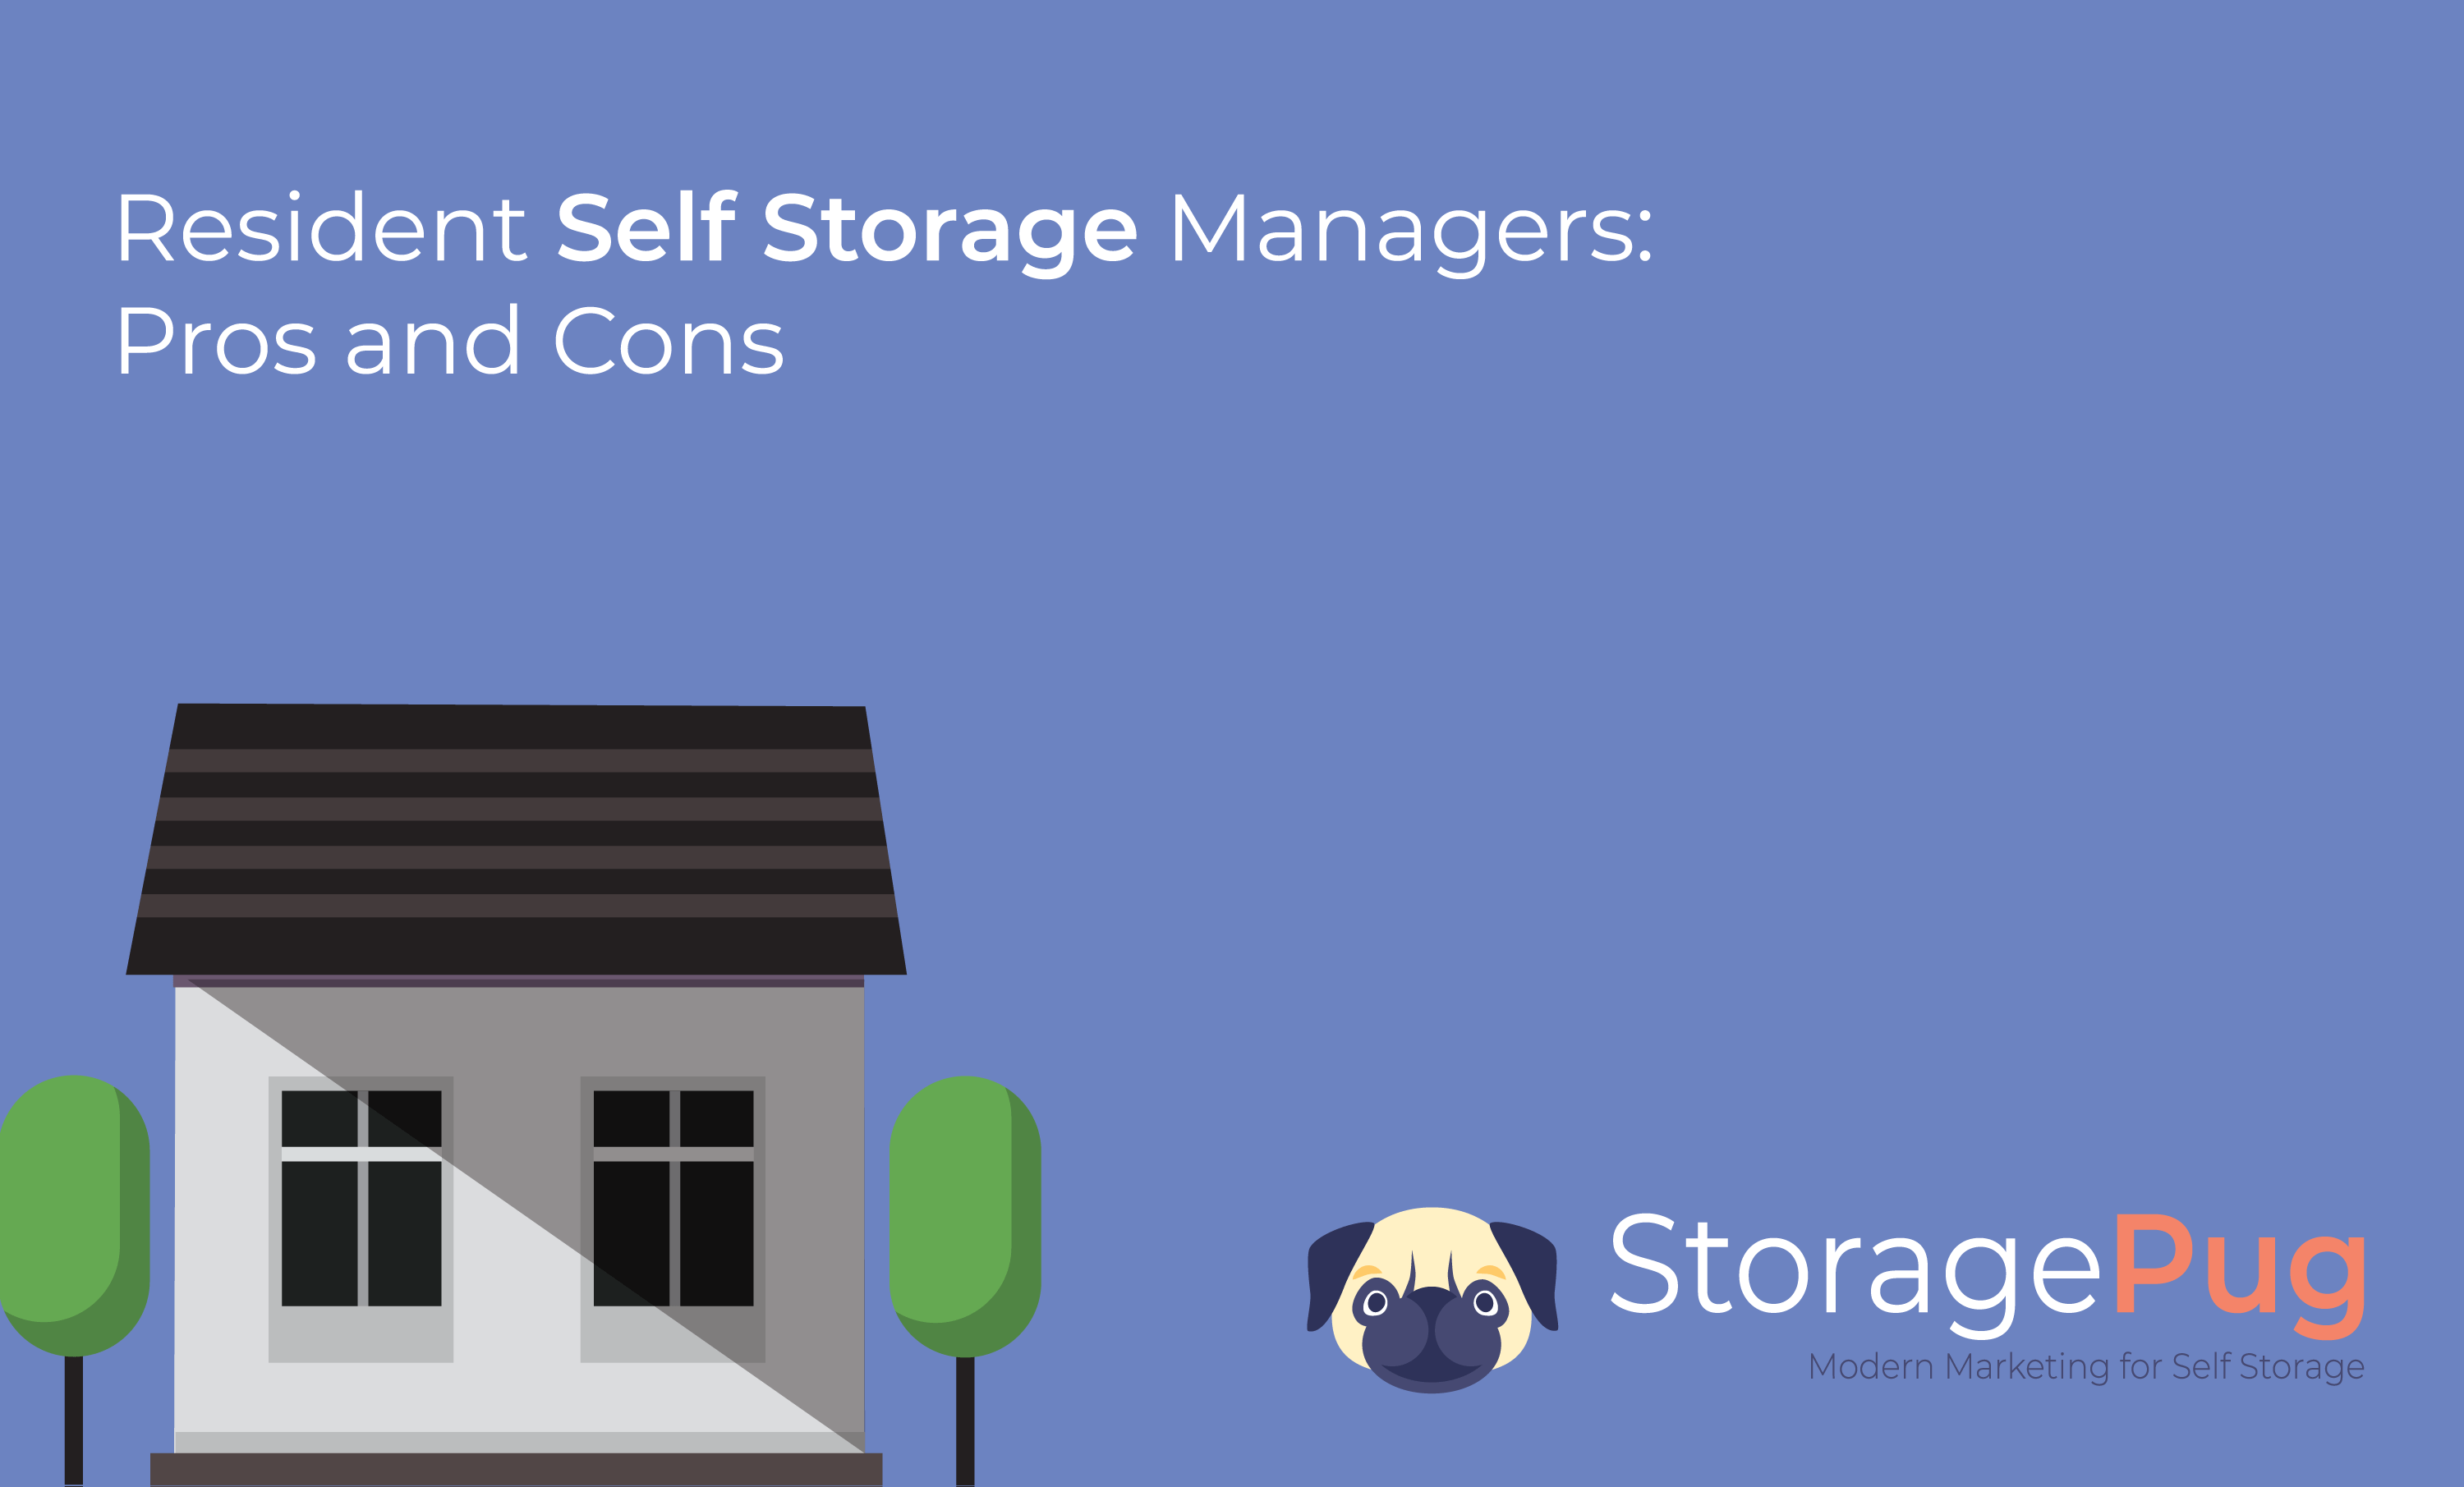 Having a resident manager has been a regular practice in the self storage industry since the inception of the industry in the late 1960's.